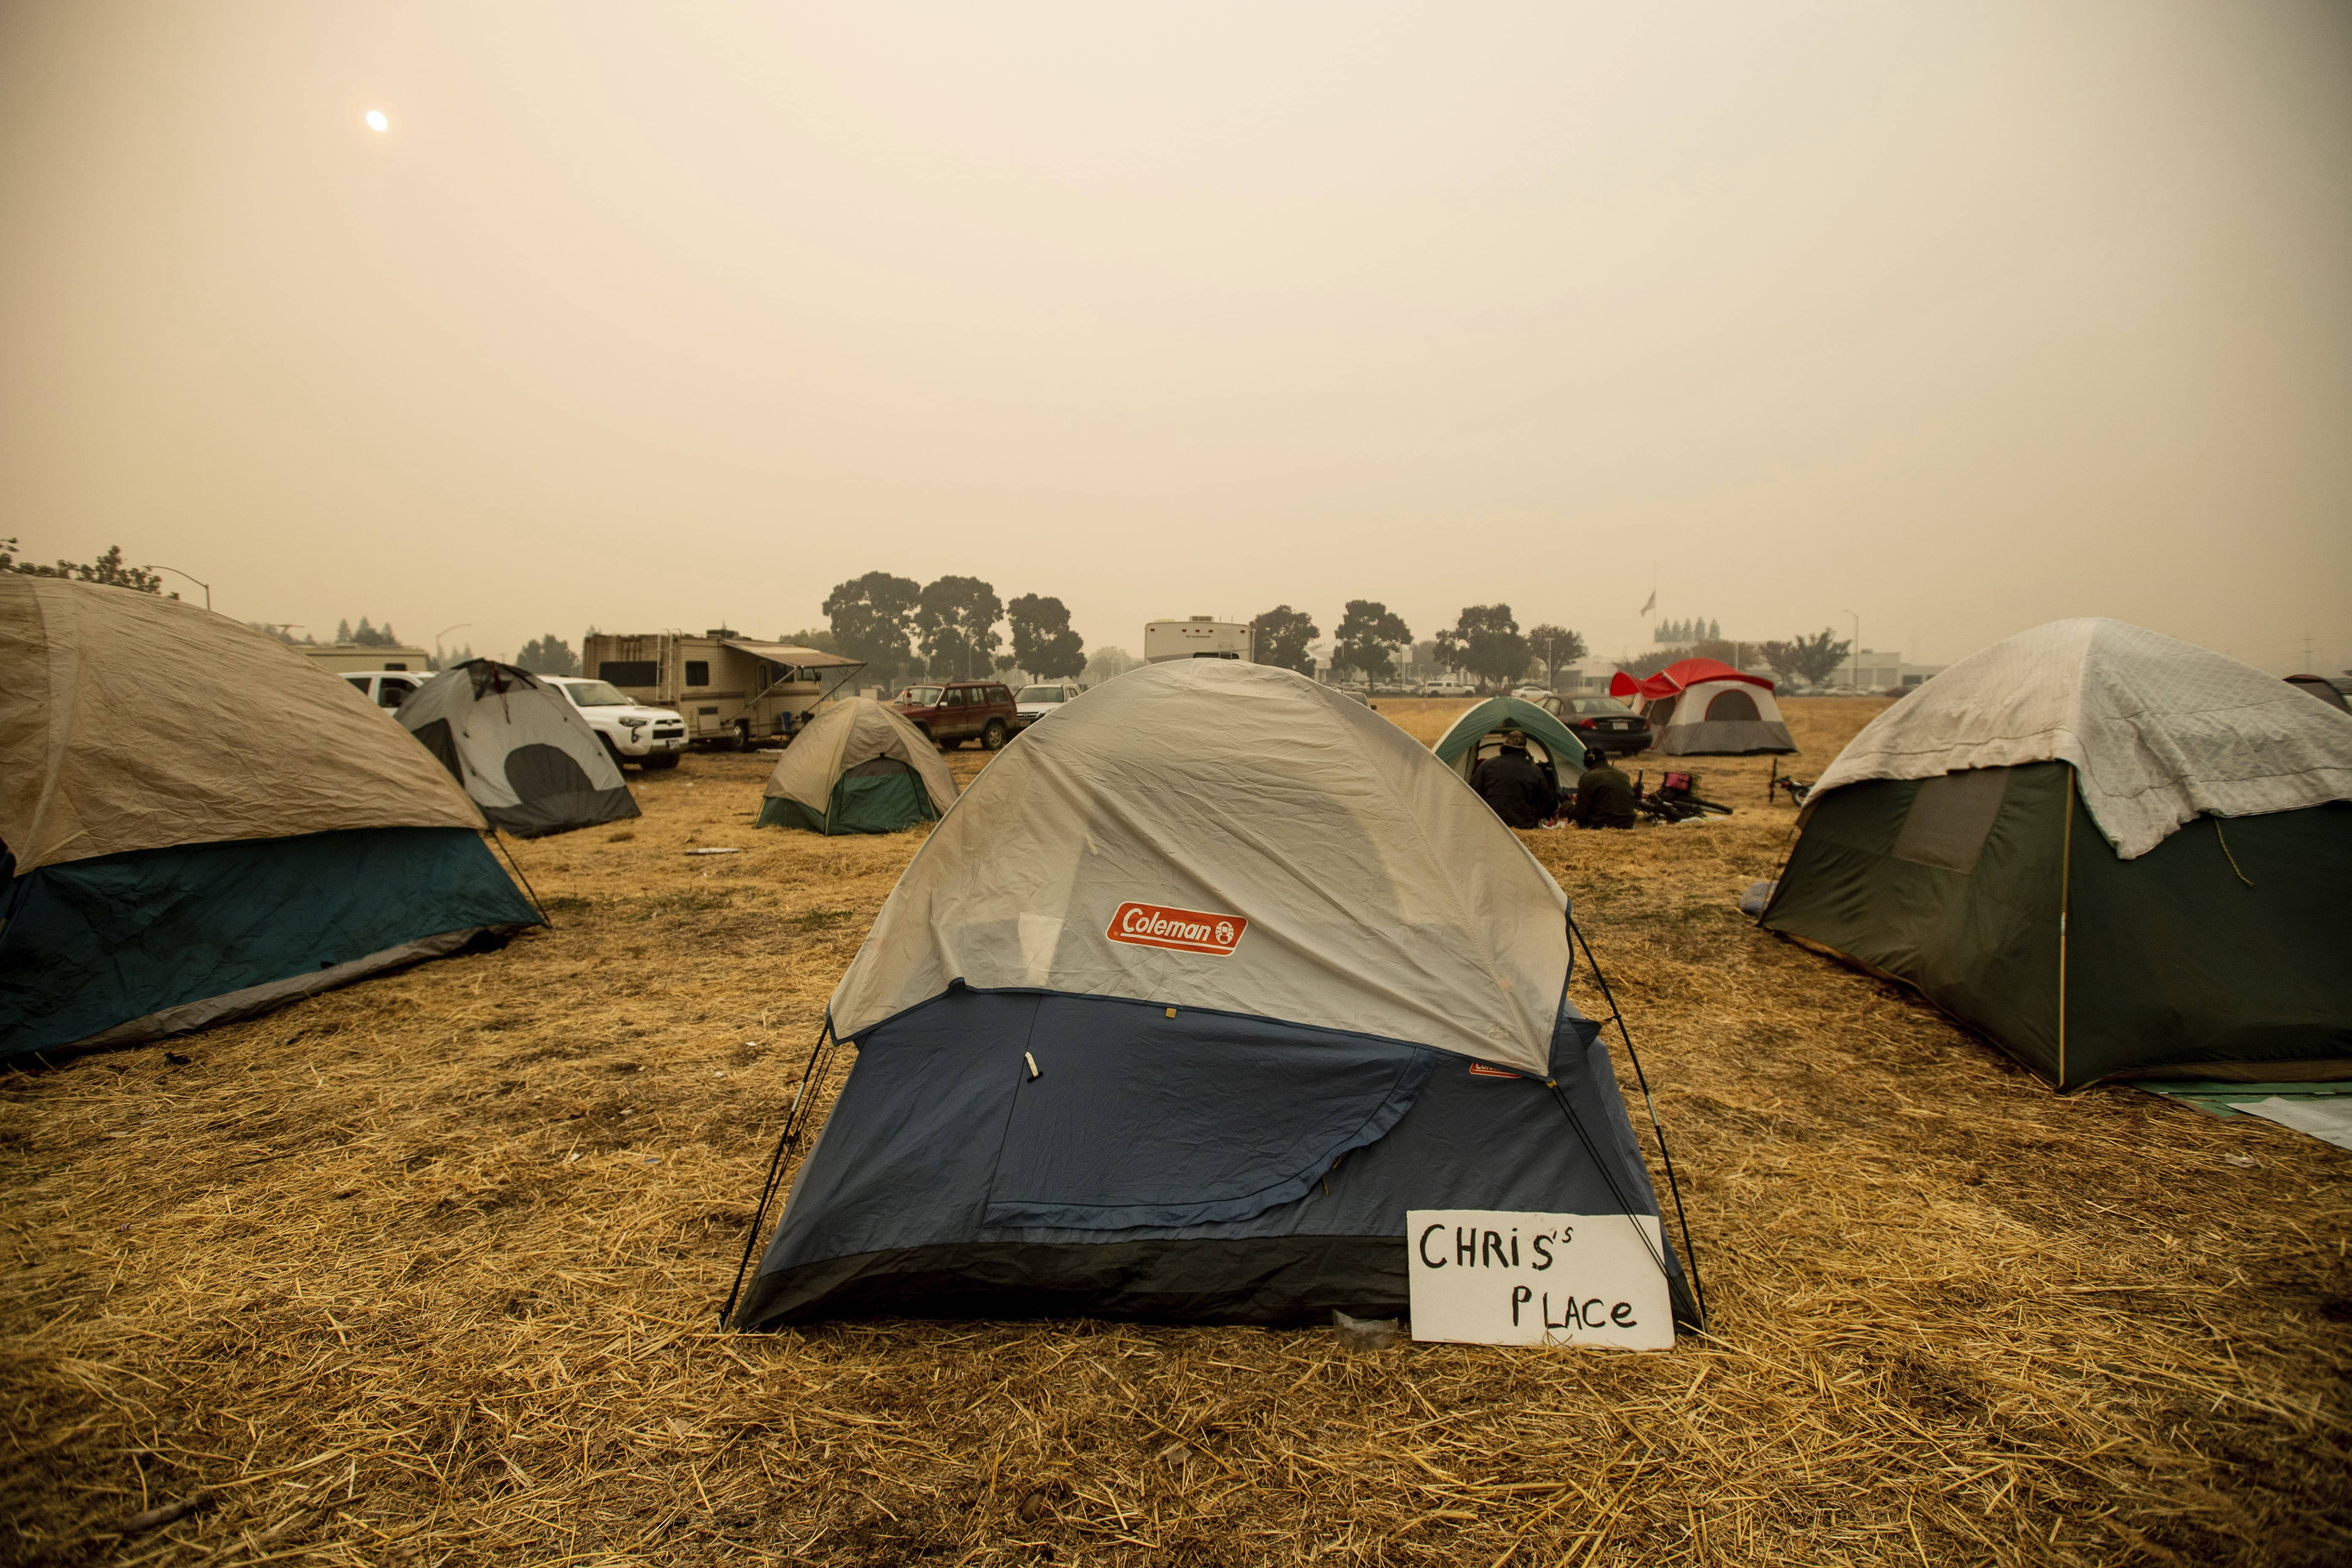 Photo of wildfire victims' tents